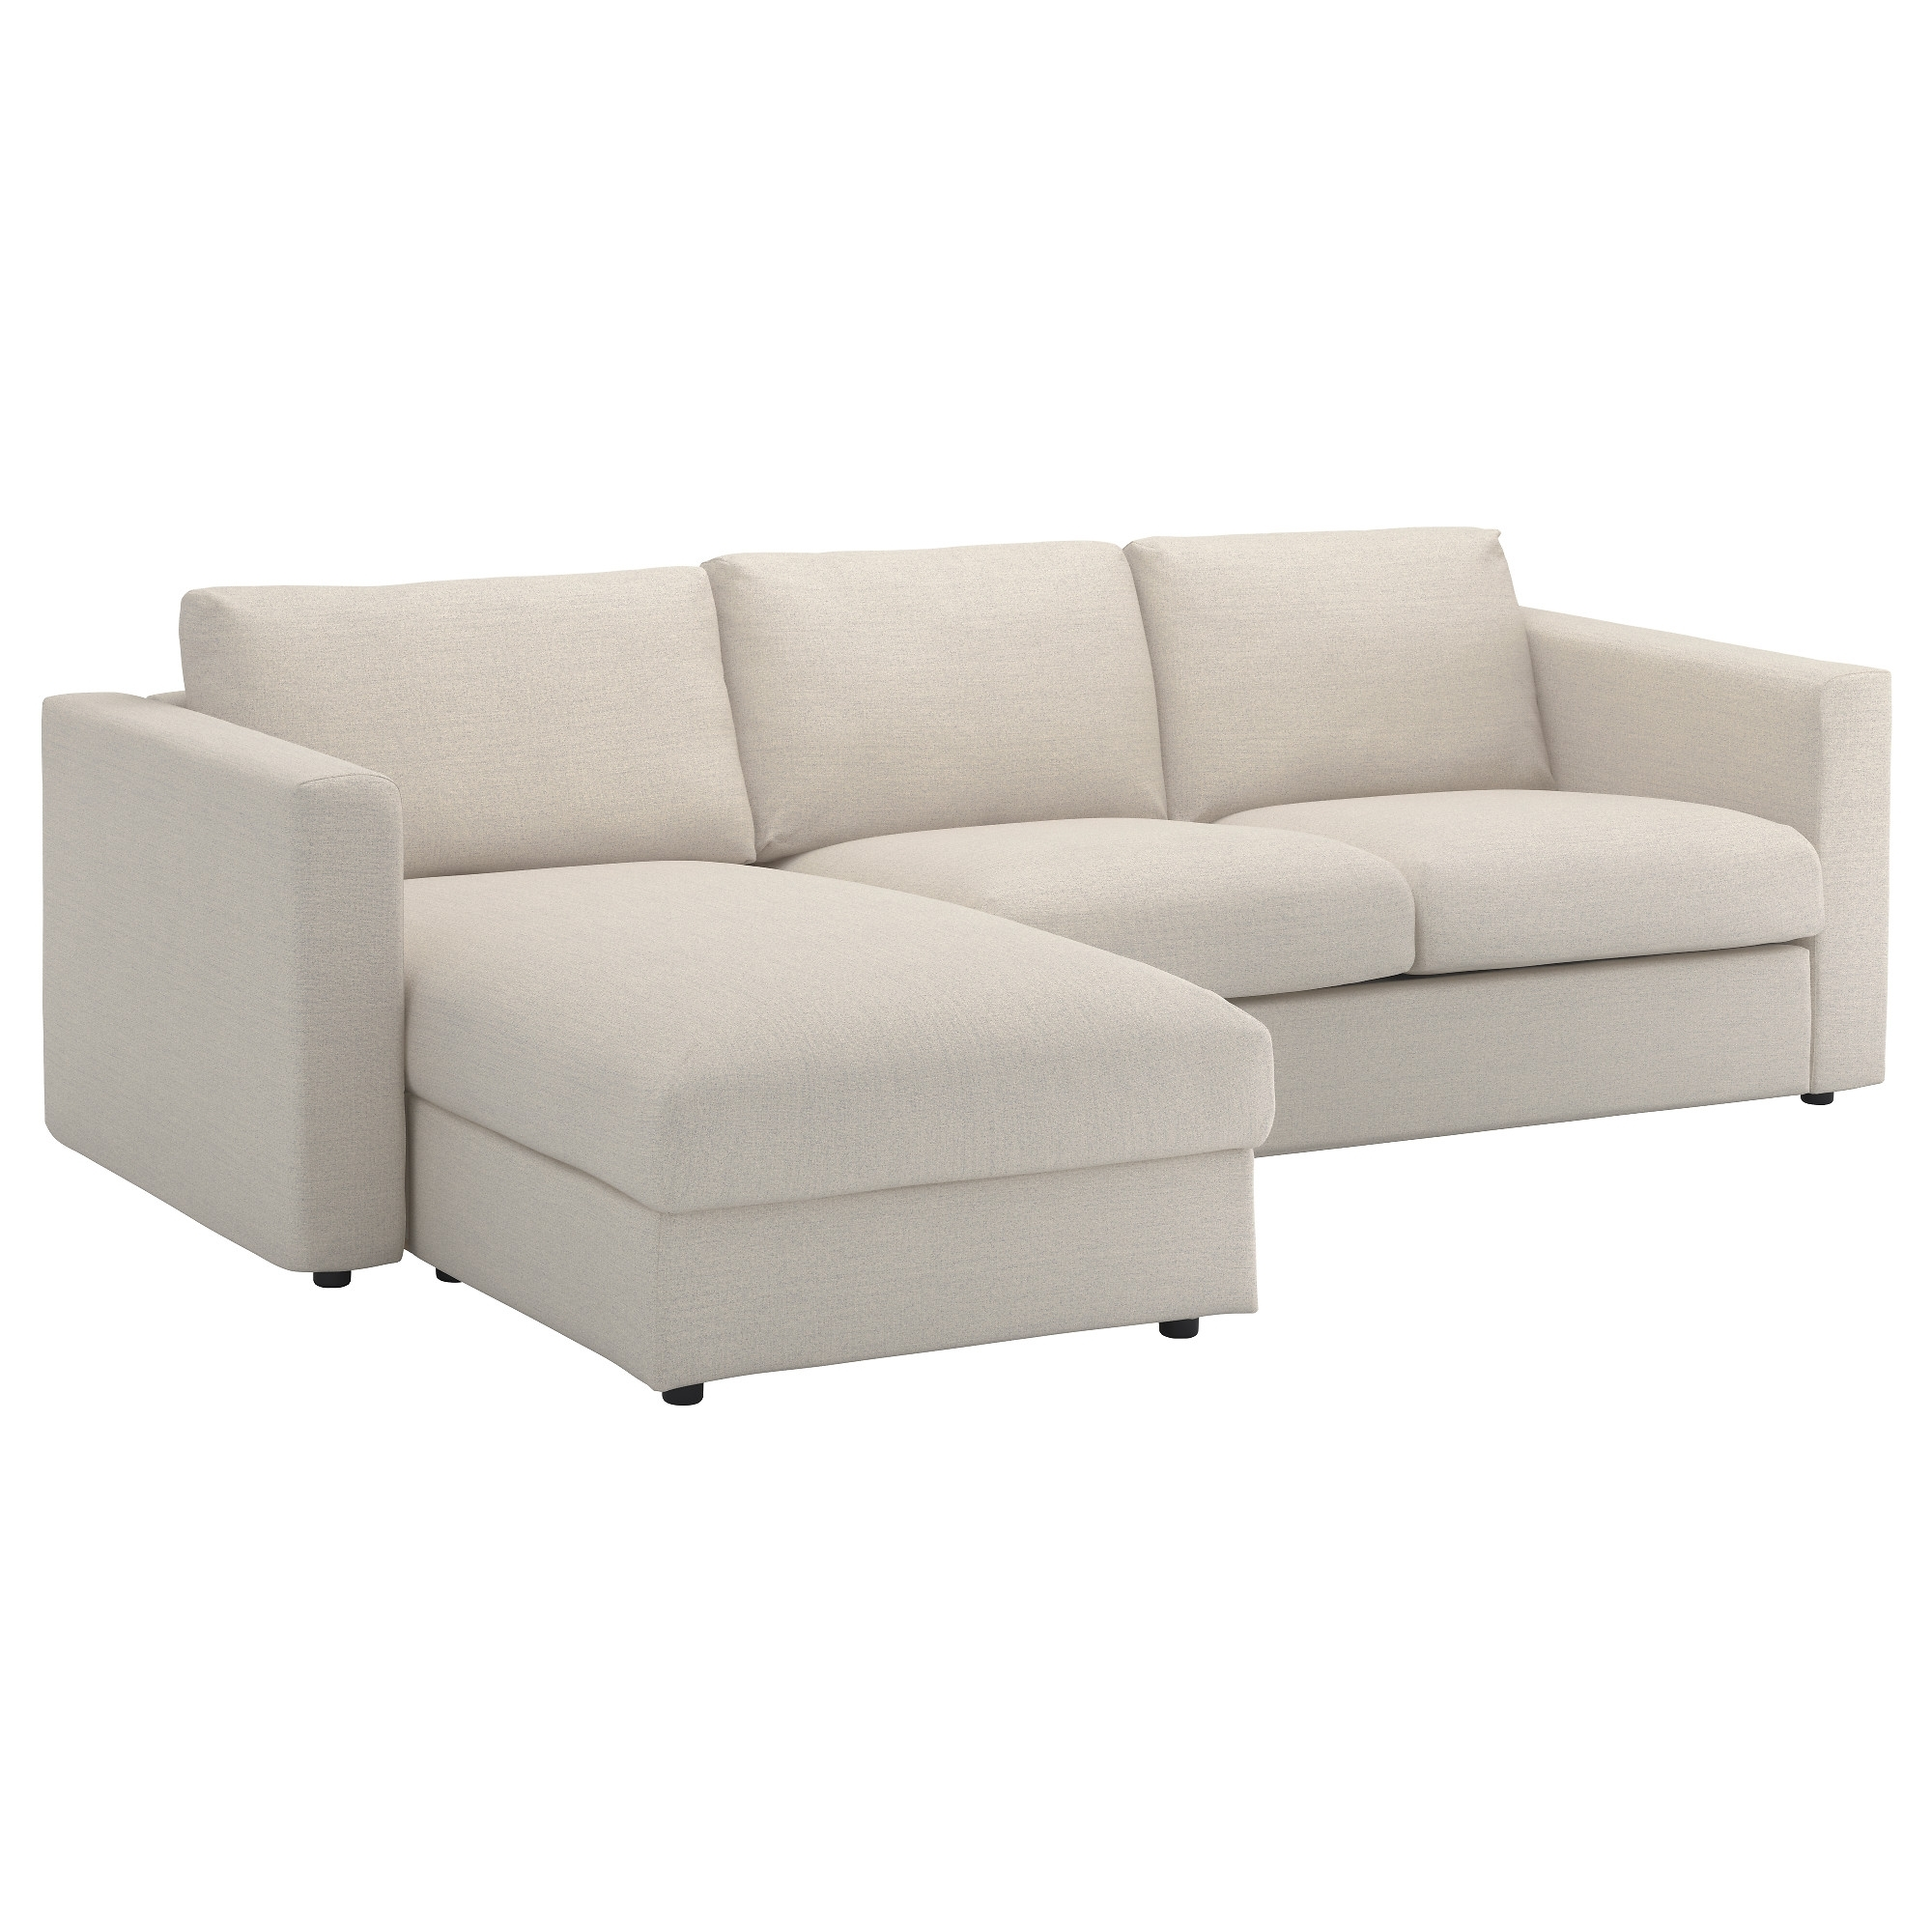 Preferred Sofas With Chaise Lounge Throughout Vimle Sofa – With Chaise/gunnared Beige – Ikea (View 8 of 15)